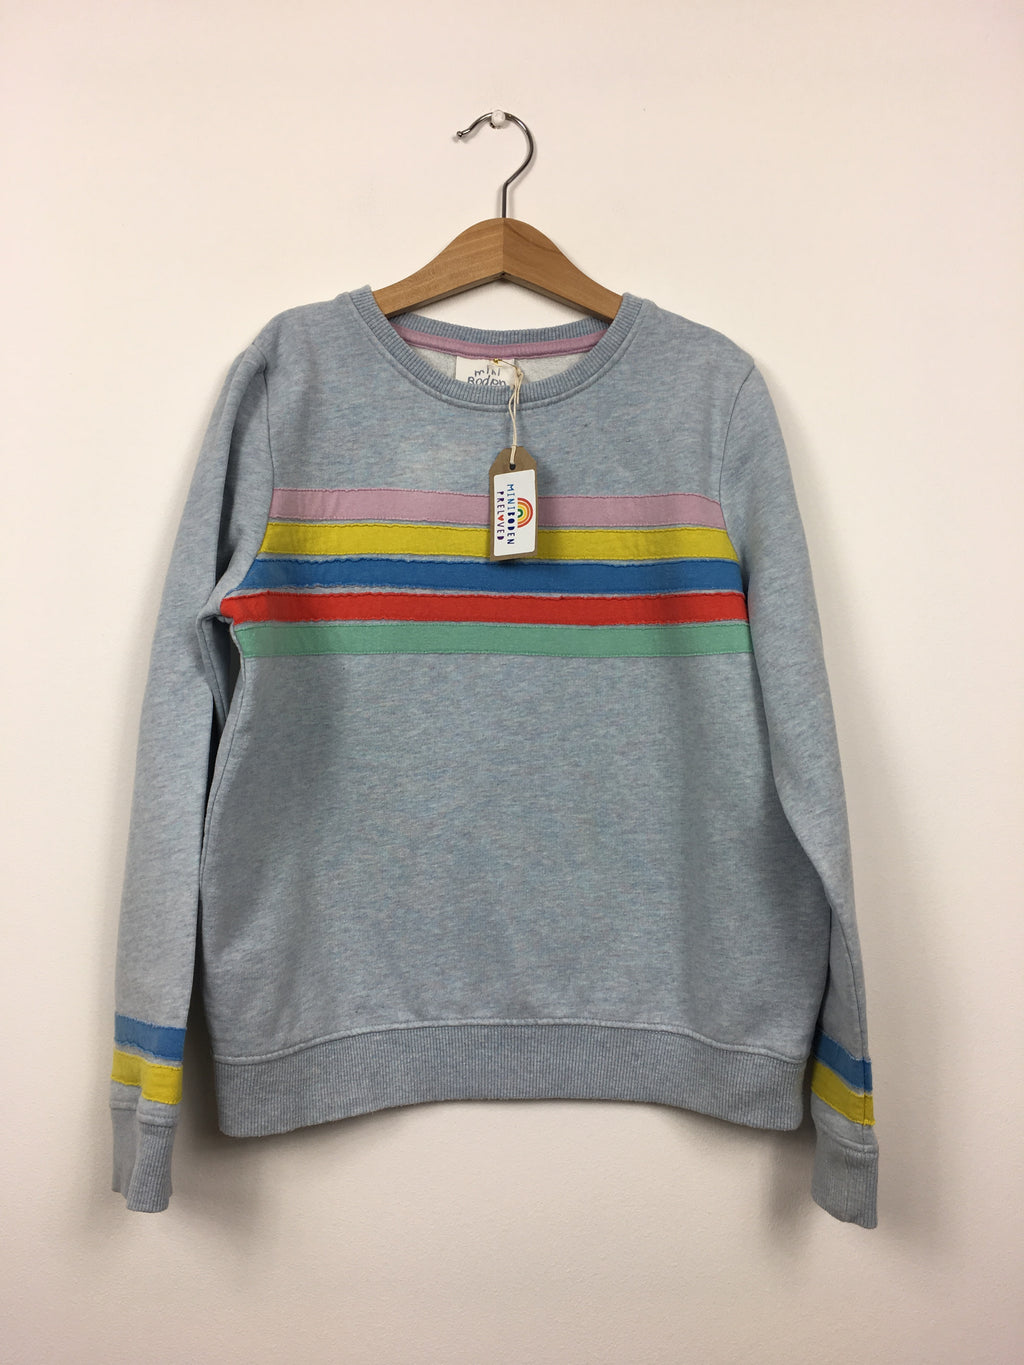 Blue Retro Style Jumper (9-10 Years)